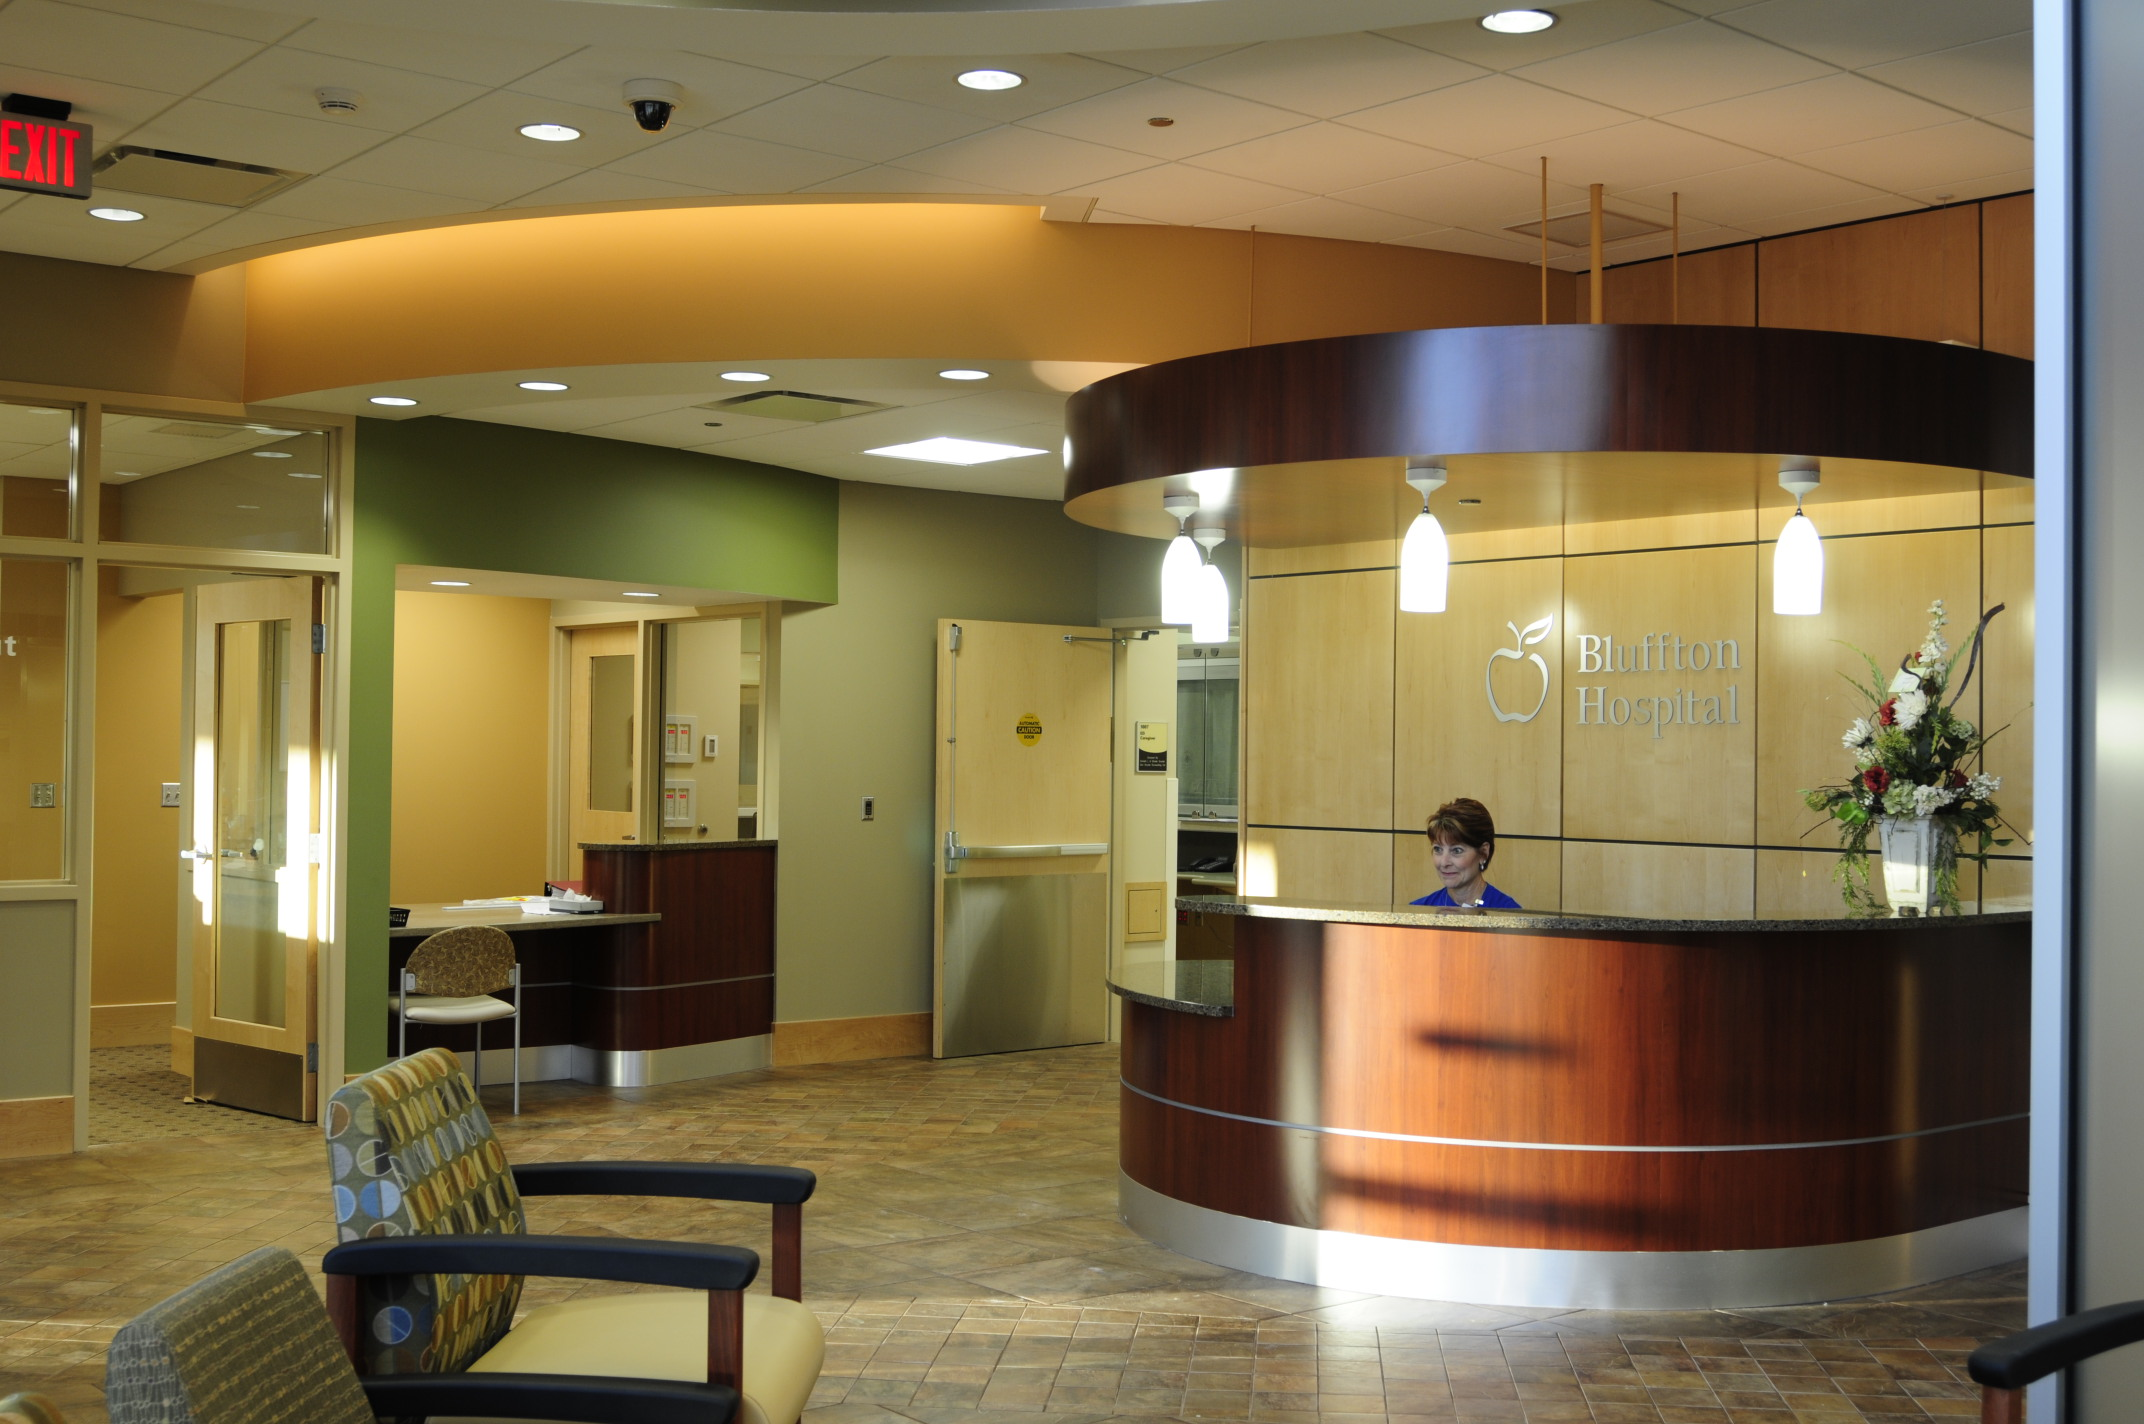 www.rcmarchitects.com - bvhs - bluffton hospital (4)